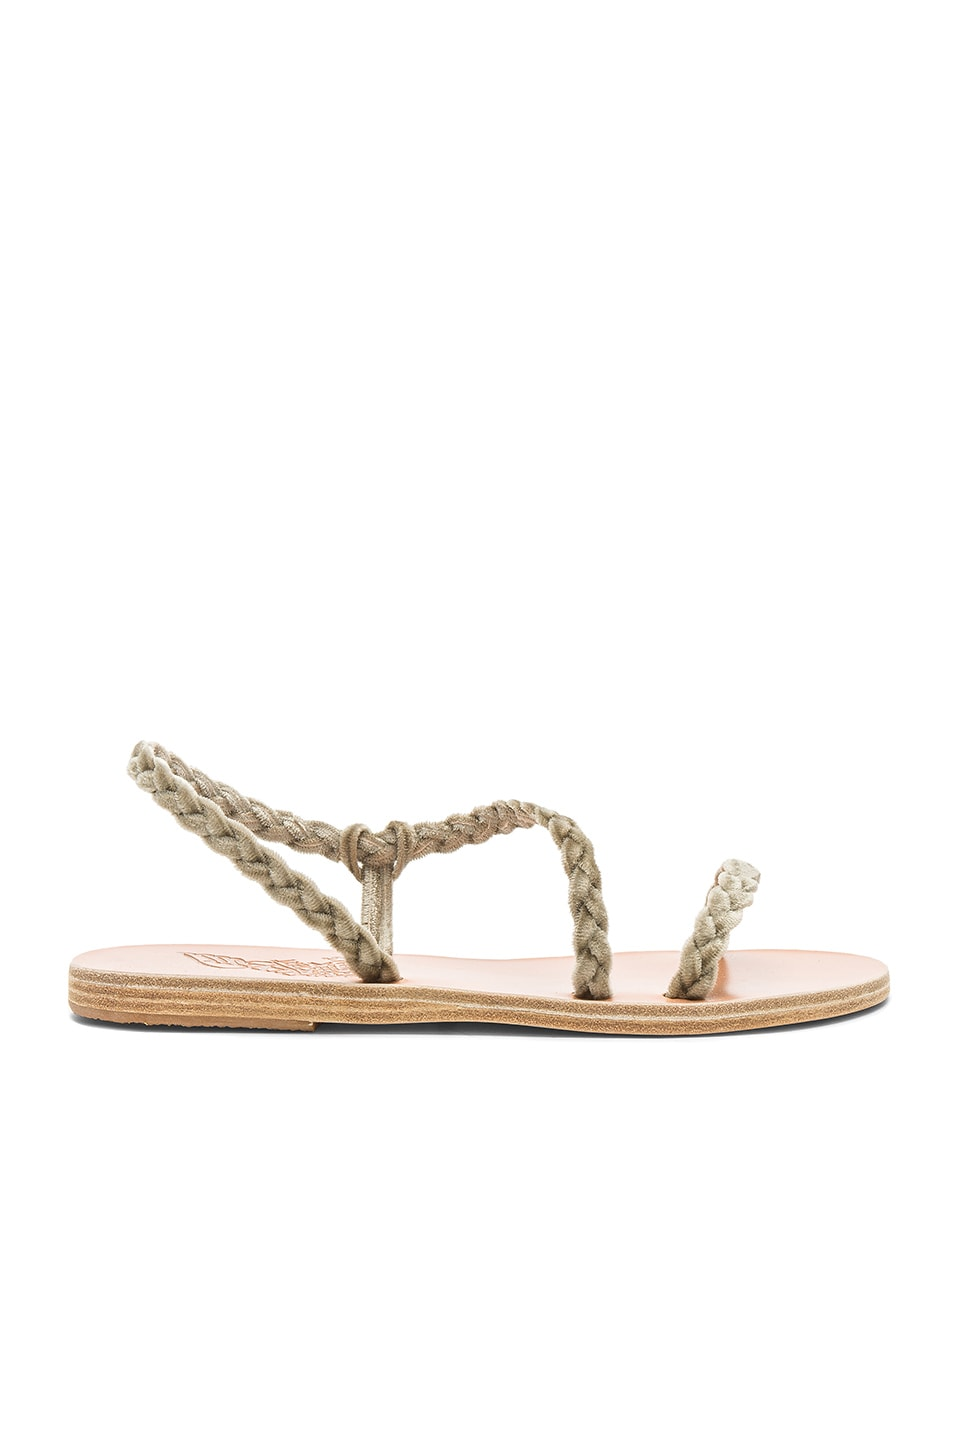 Anaxo Sandal by Ancient Greek Sandals